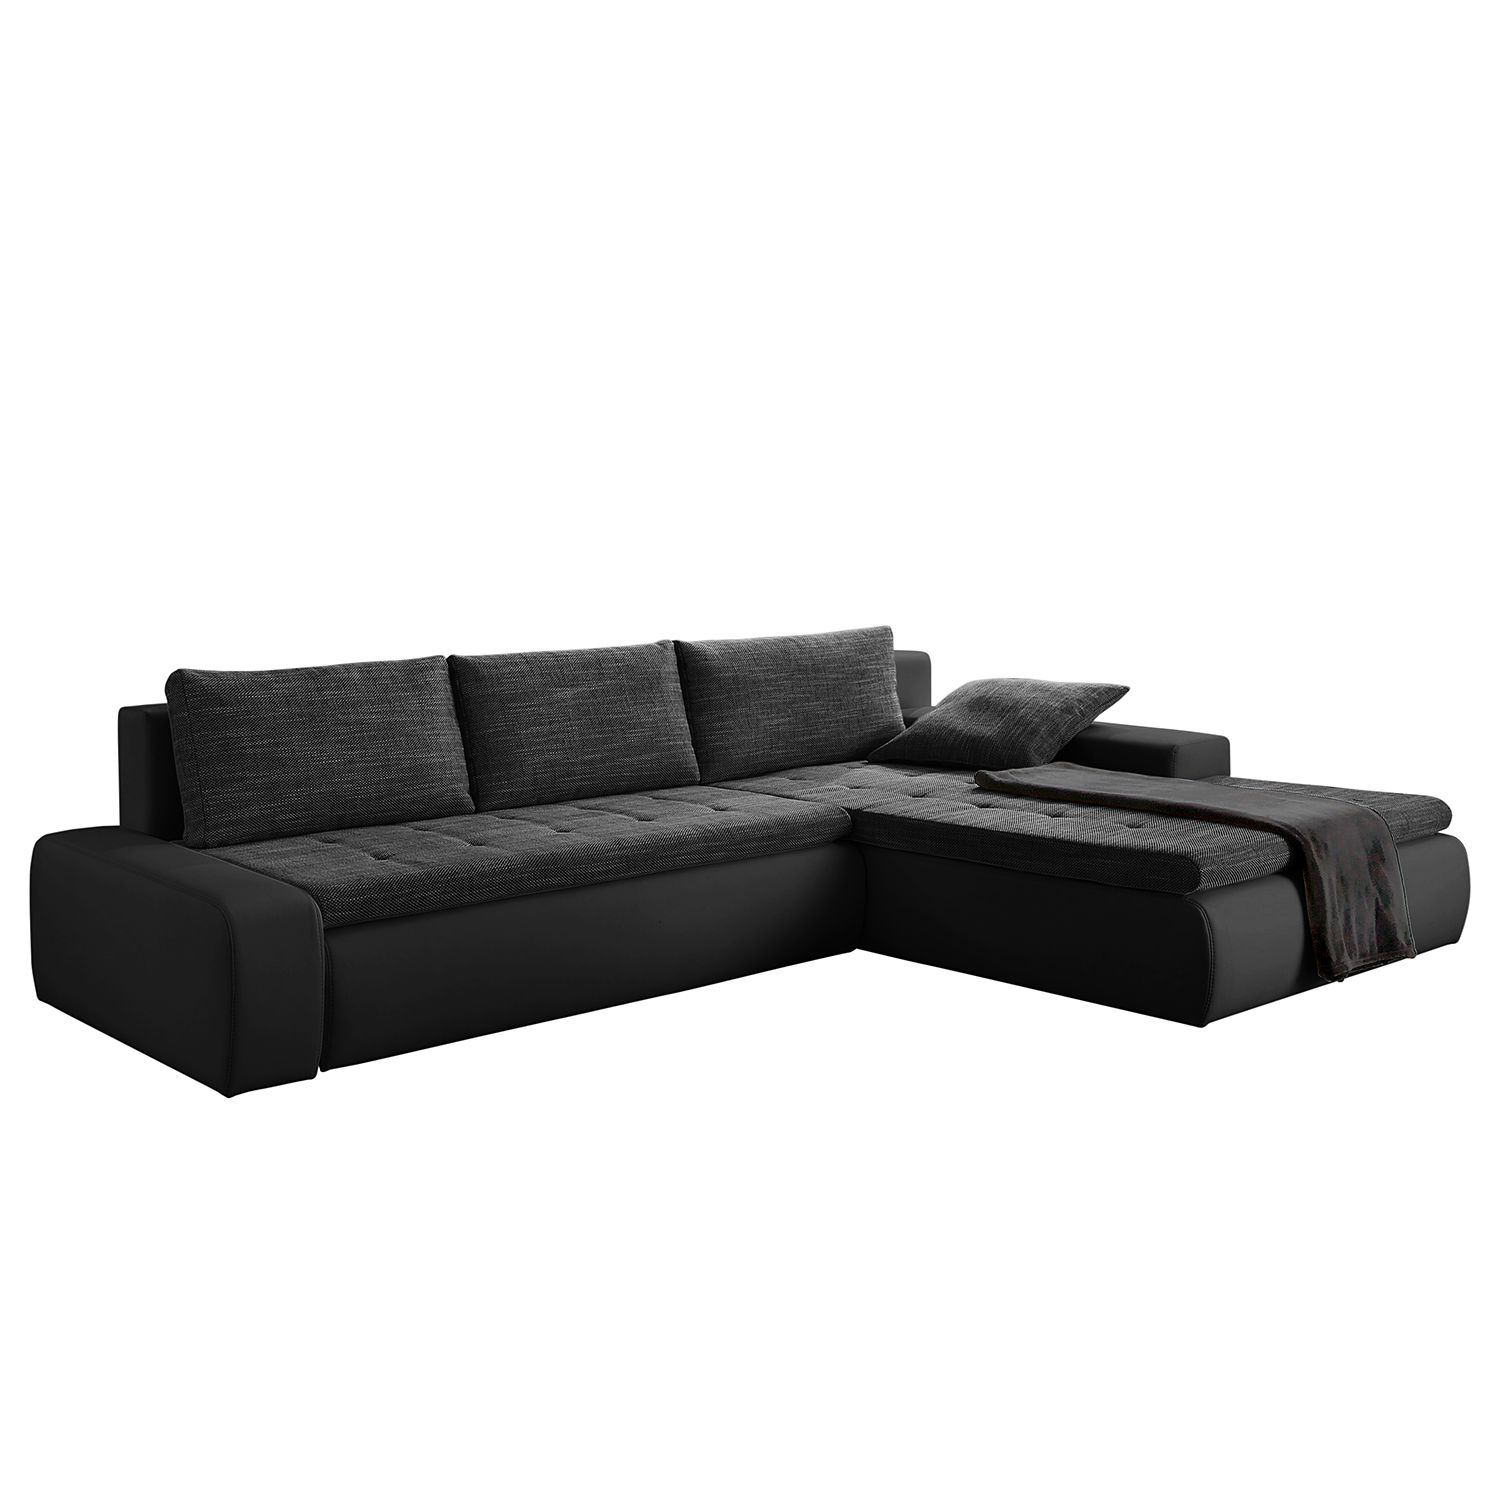 ledersofa mit schlaffunktion leder sofa mit schlaffunktion eur 50 00 picclick de erstaunlich. Black Bedroom Furniture Sets. Home Design Ideas